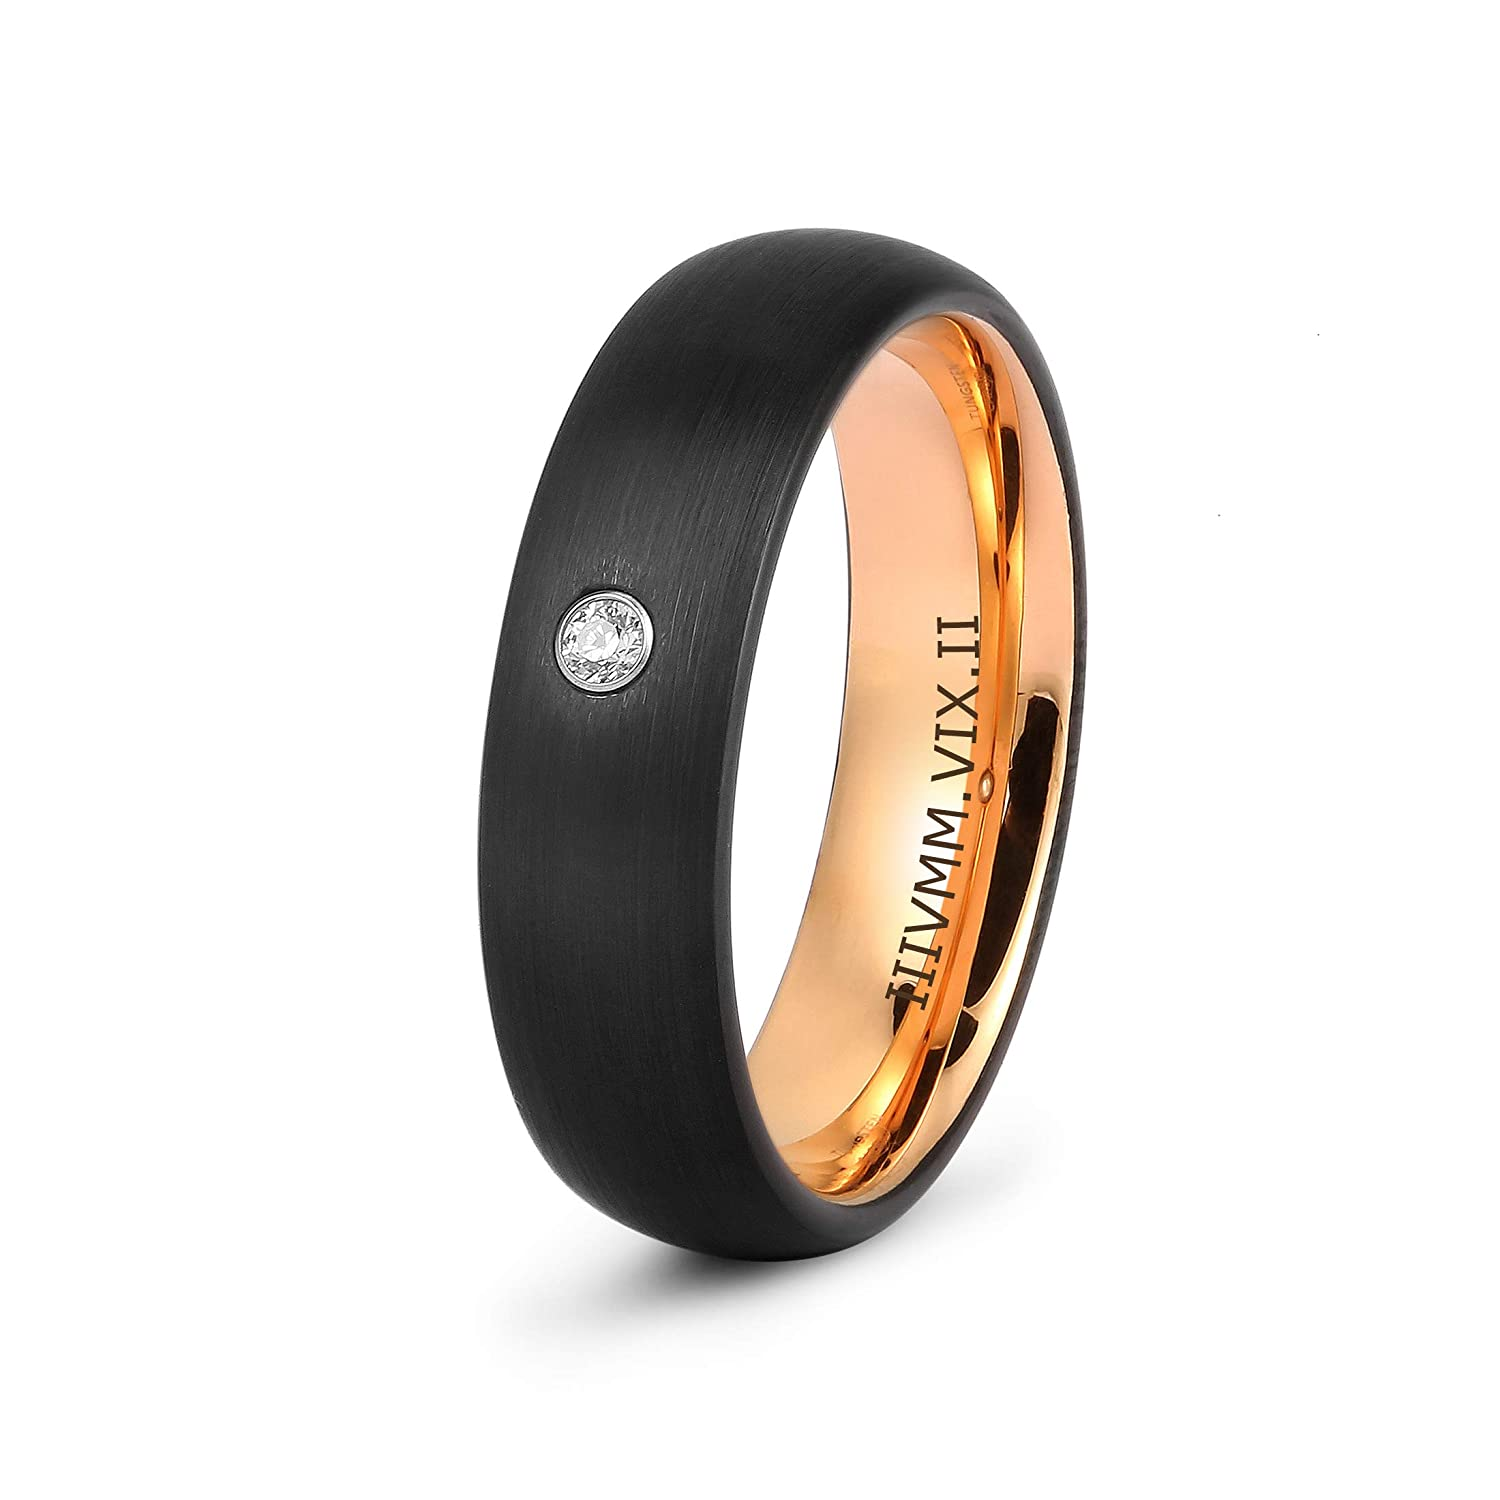 LerchPhi Tungsten Rings for Women Free Custom Engraved Cubic Zircon Paved Black Satin Finish Dome Rose Gold Innerface Comfort-fit